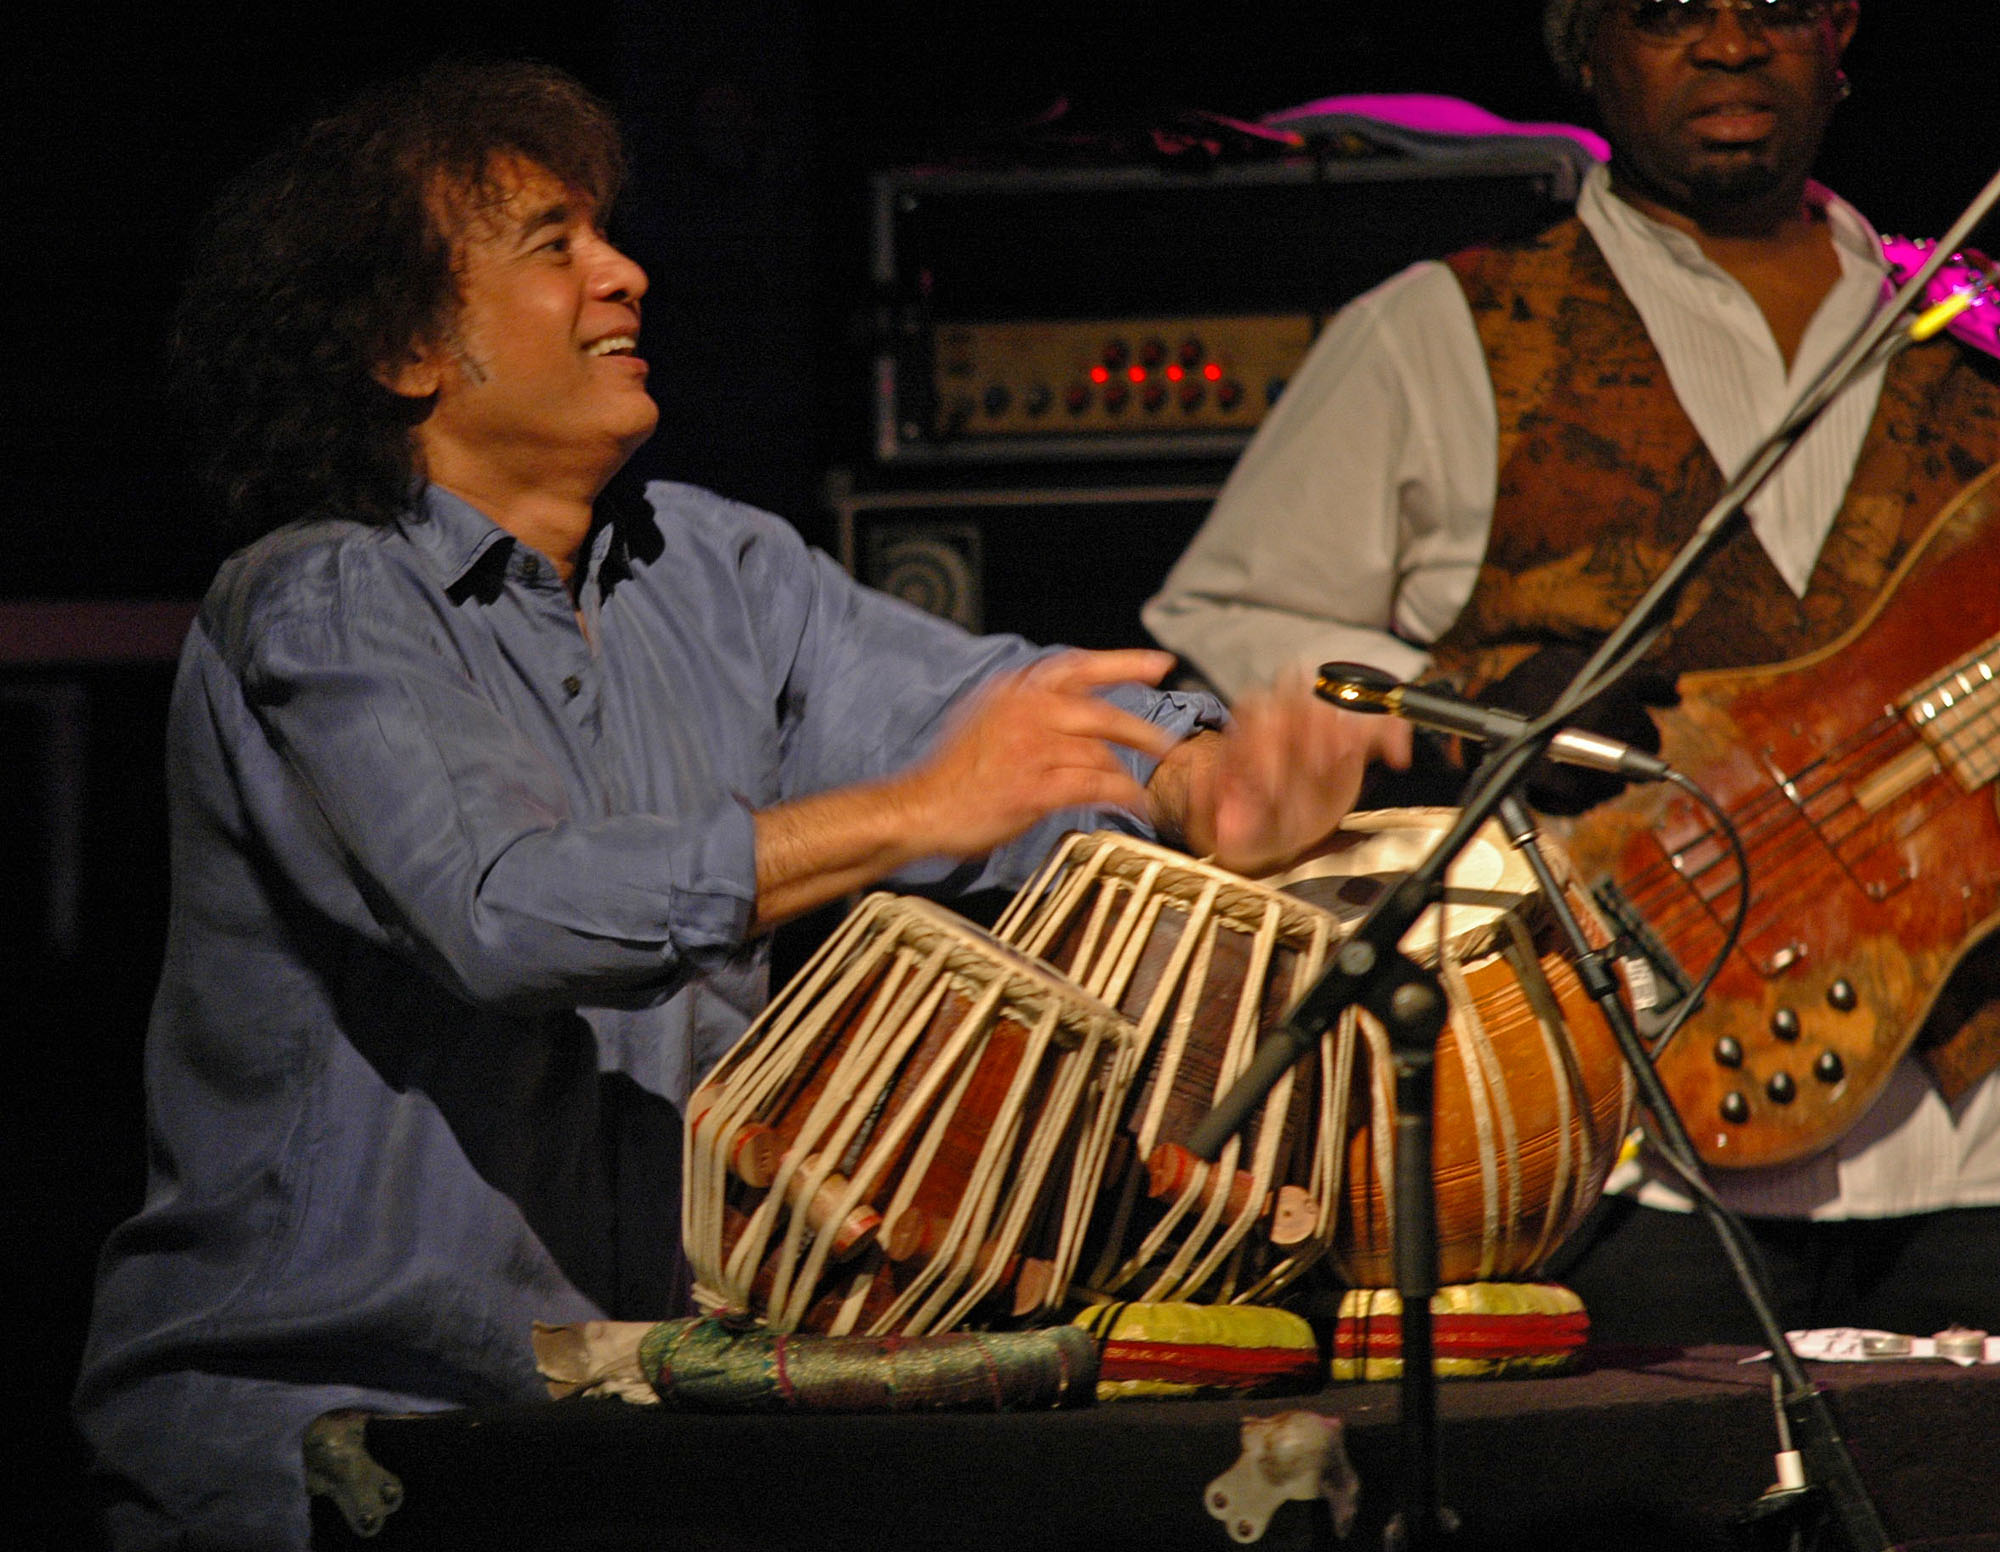 Special Guest Zakir Hussain, Performing with John McLaughlin and the 4th Dimension at the 2010 New Universe Music Festival